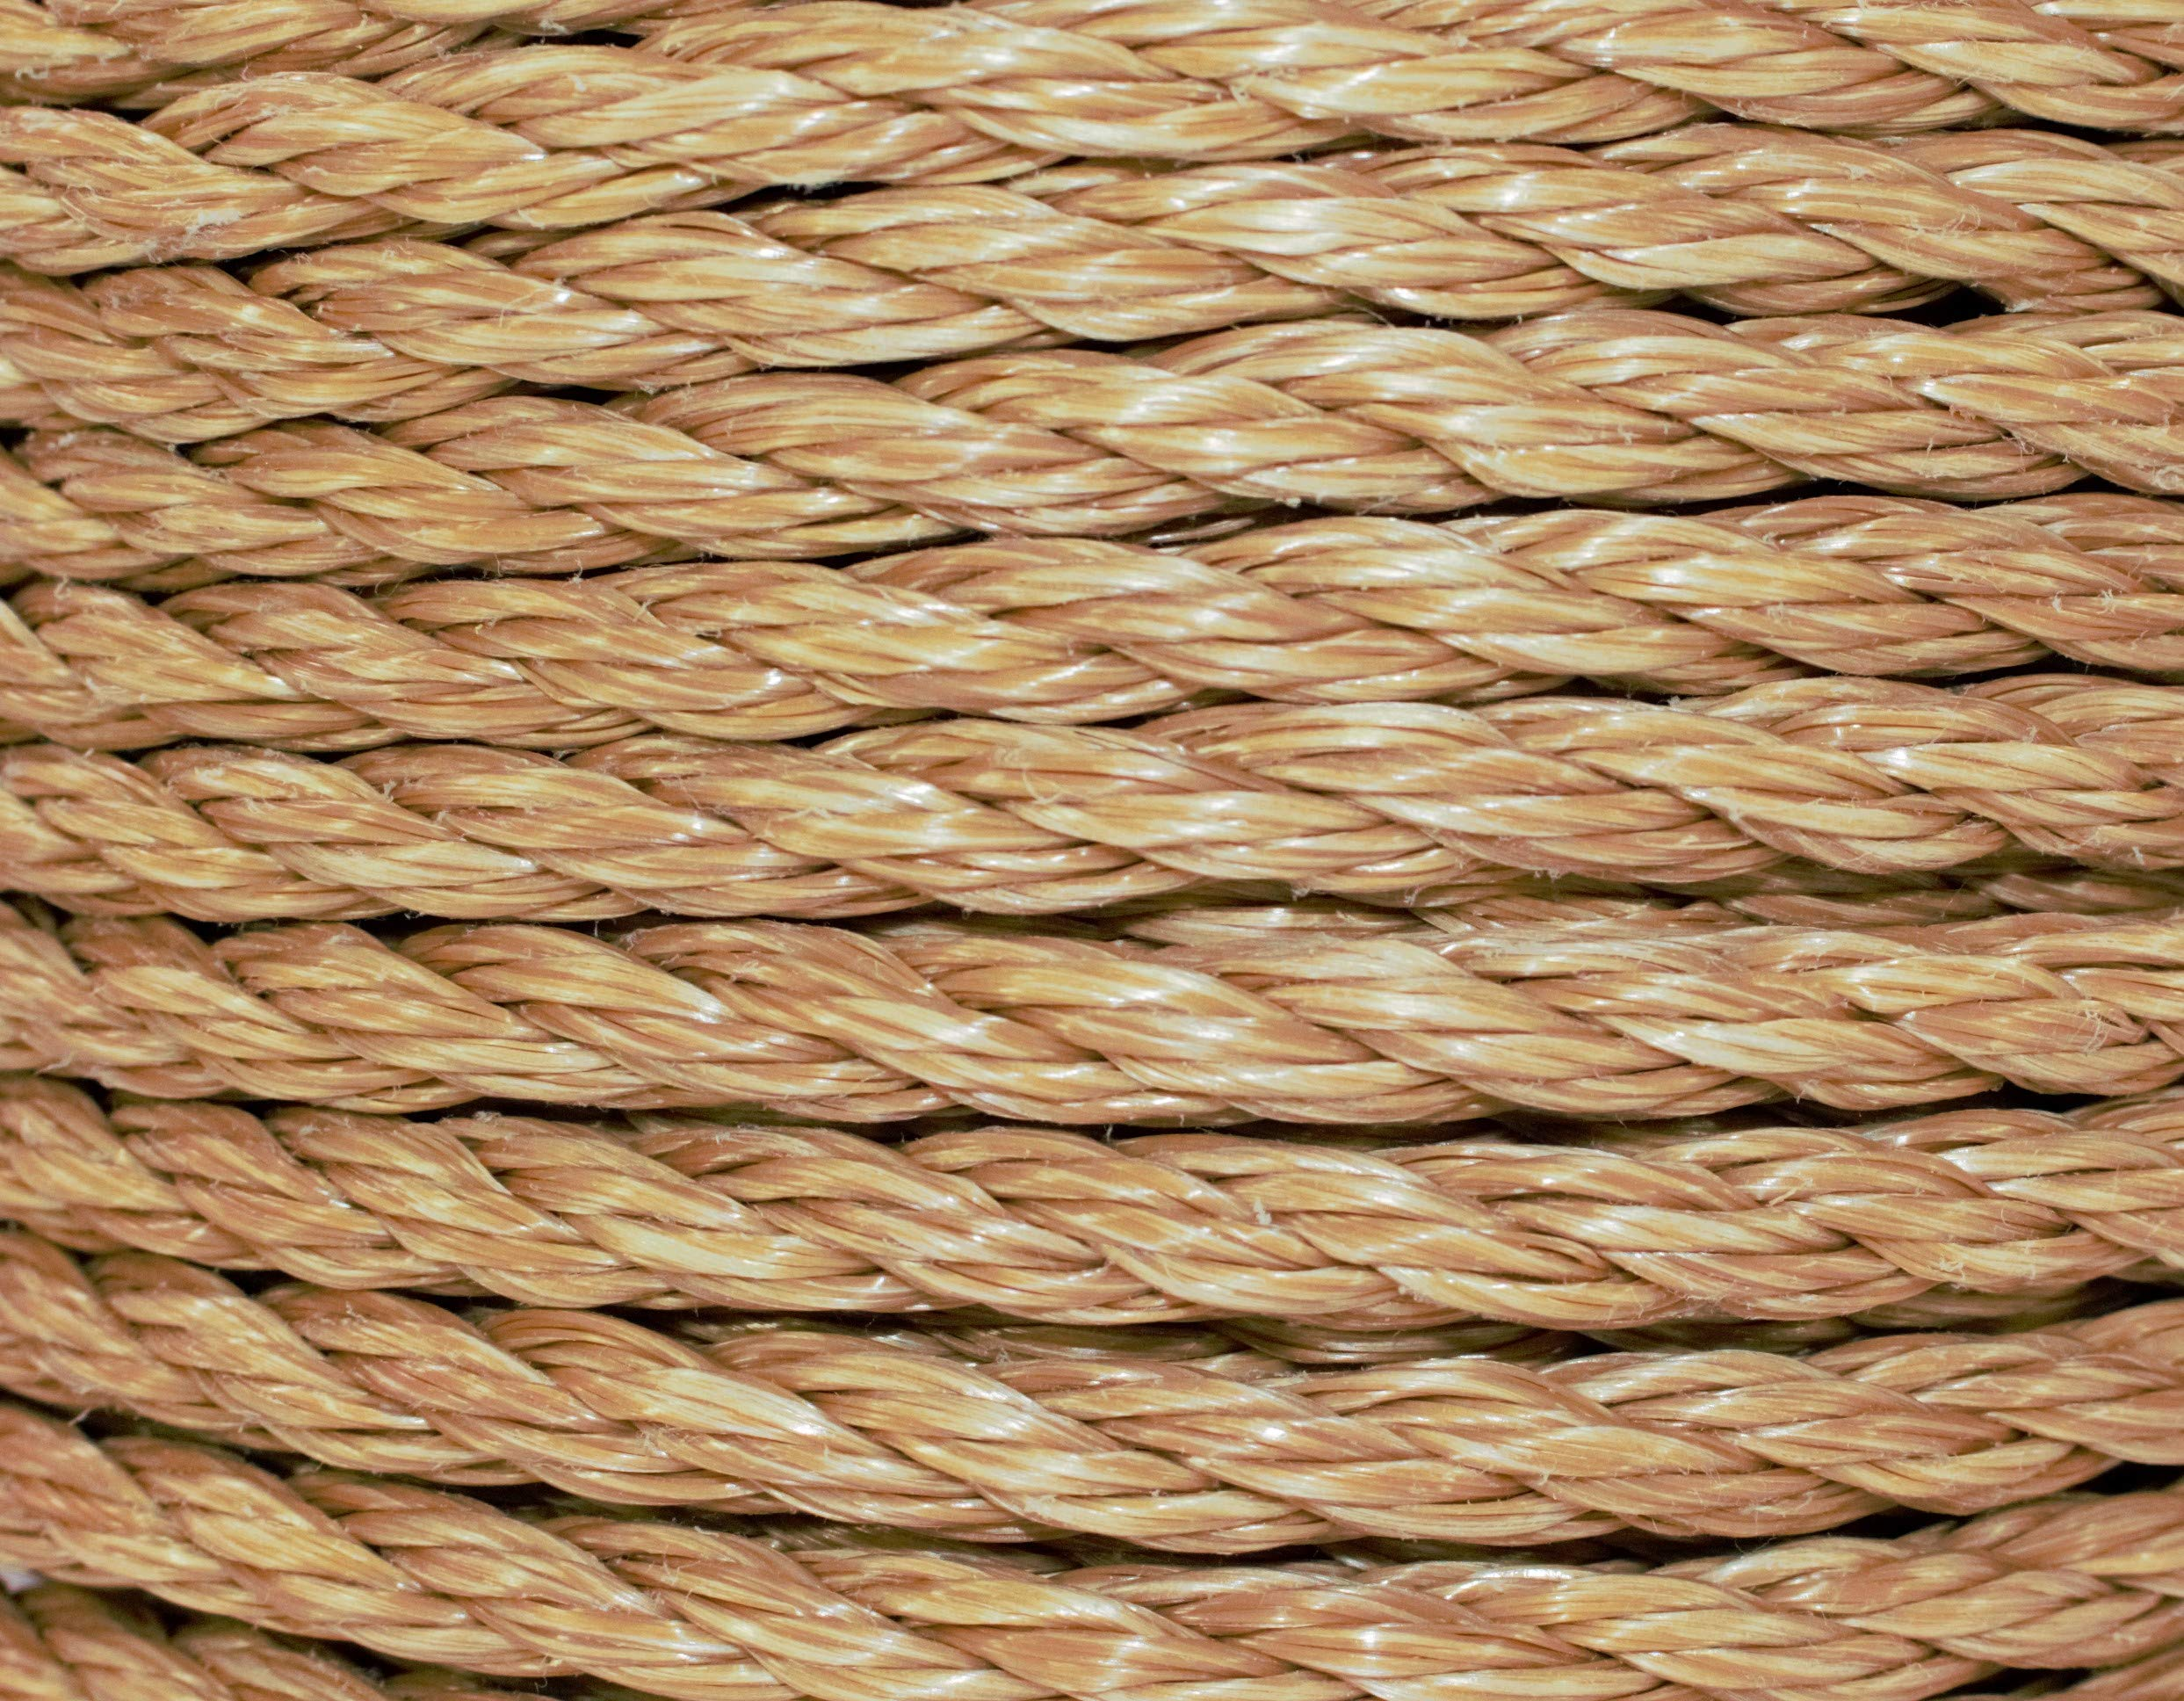 SGT KNOTS ProManila Rope (3/8 inch) UnManila Tan Twisted 3 Strand Polypropylene Cord - Moisture, UV, and Chemical Resistant - Marine, DIY Projects, Crafts, Commercial, Indoor/Outdoor (400 ft) by SGT KNOTS